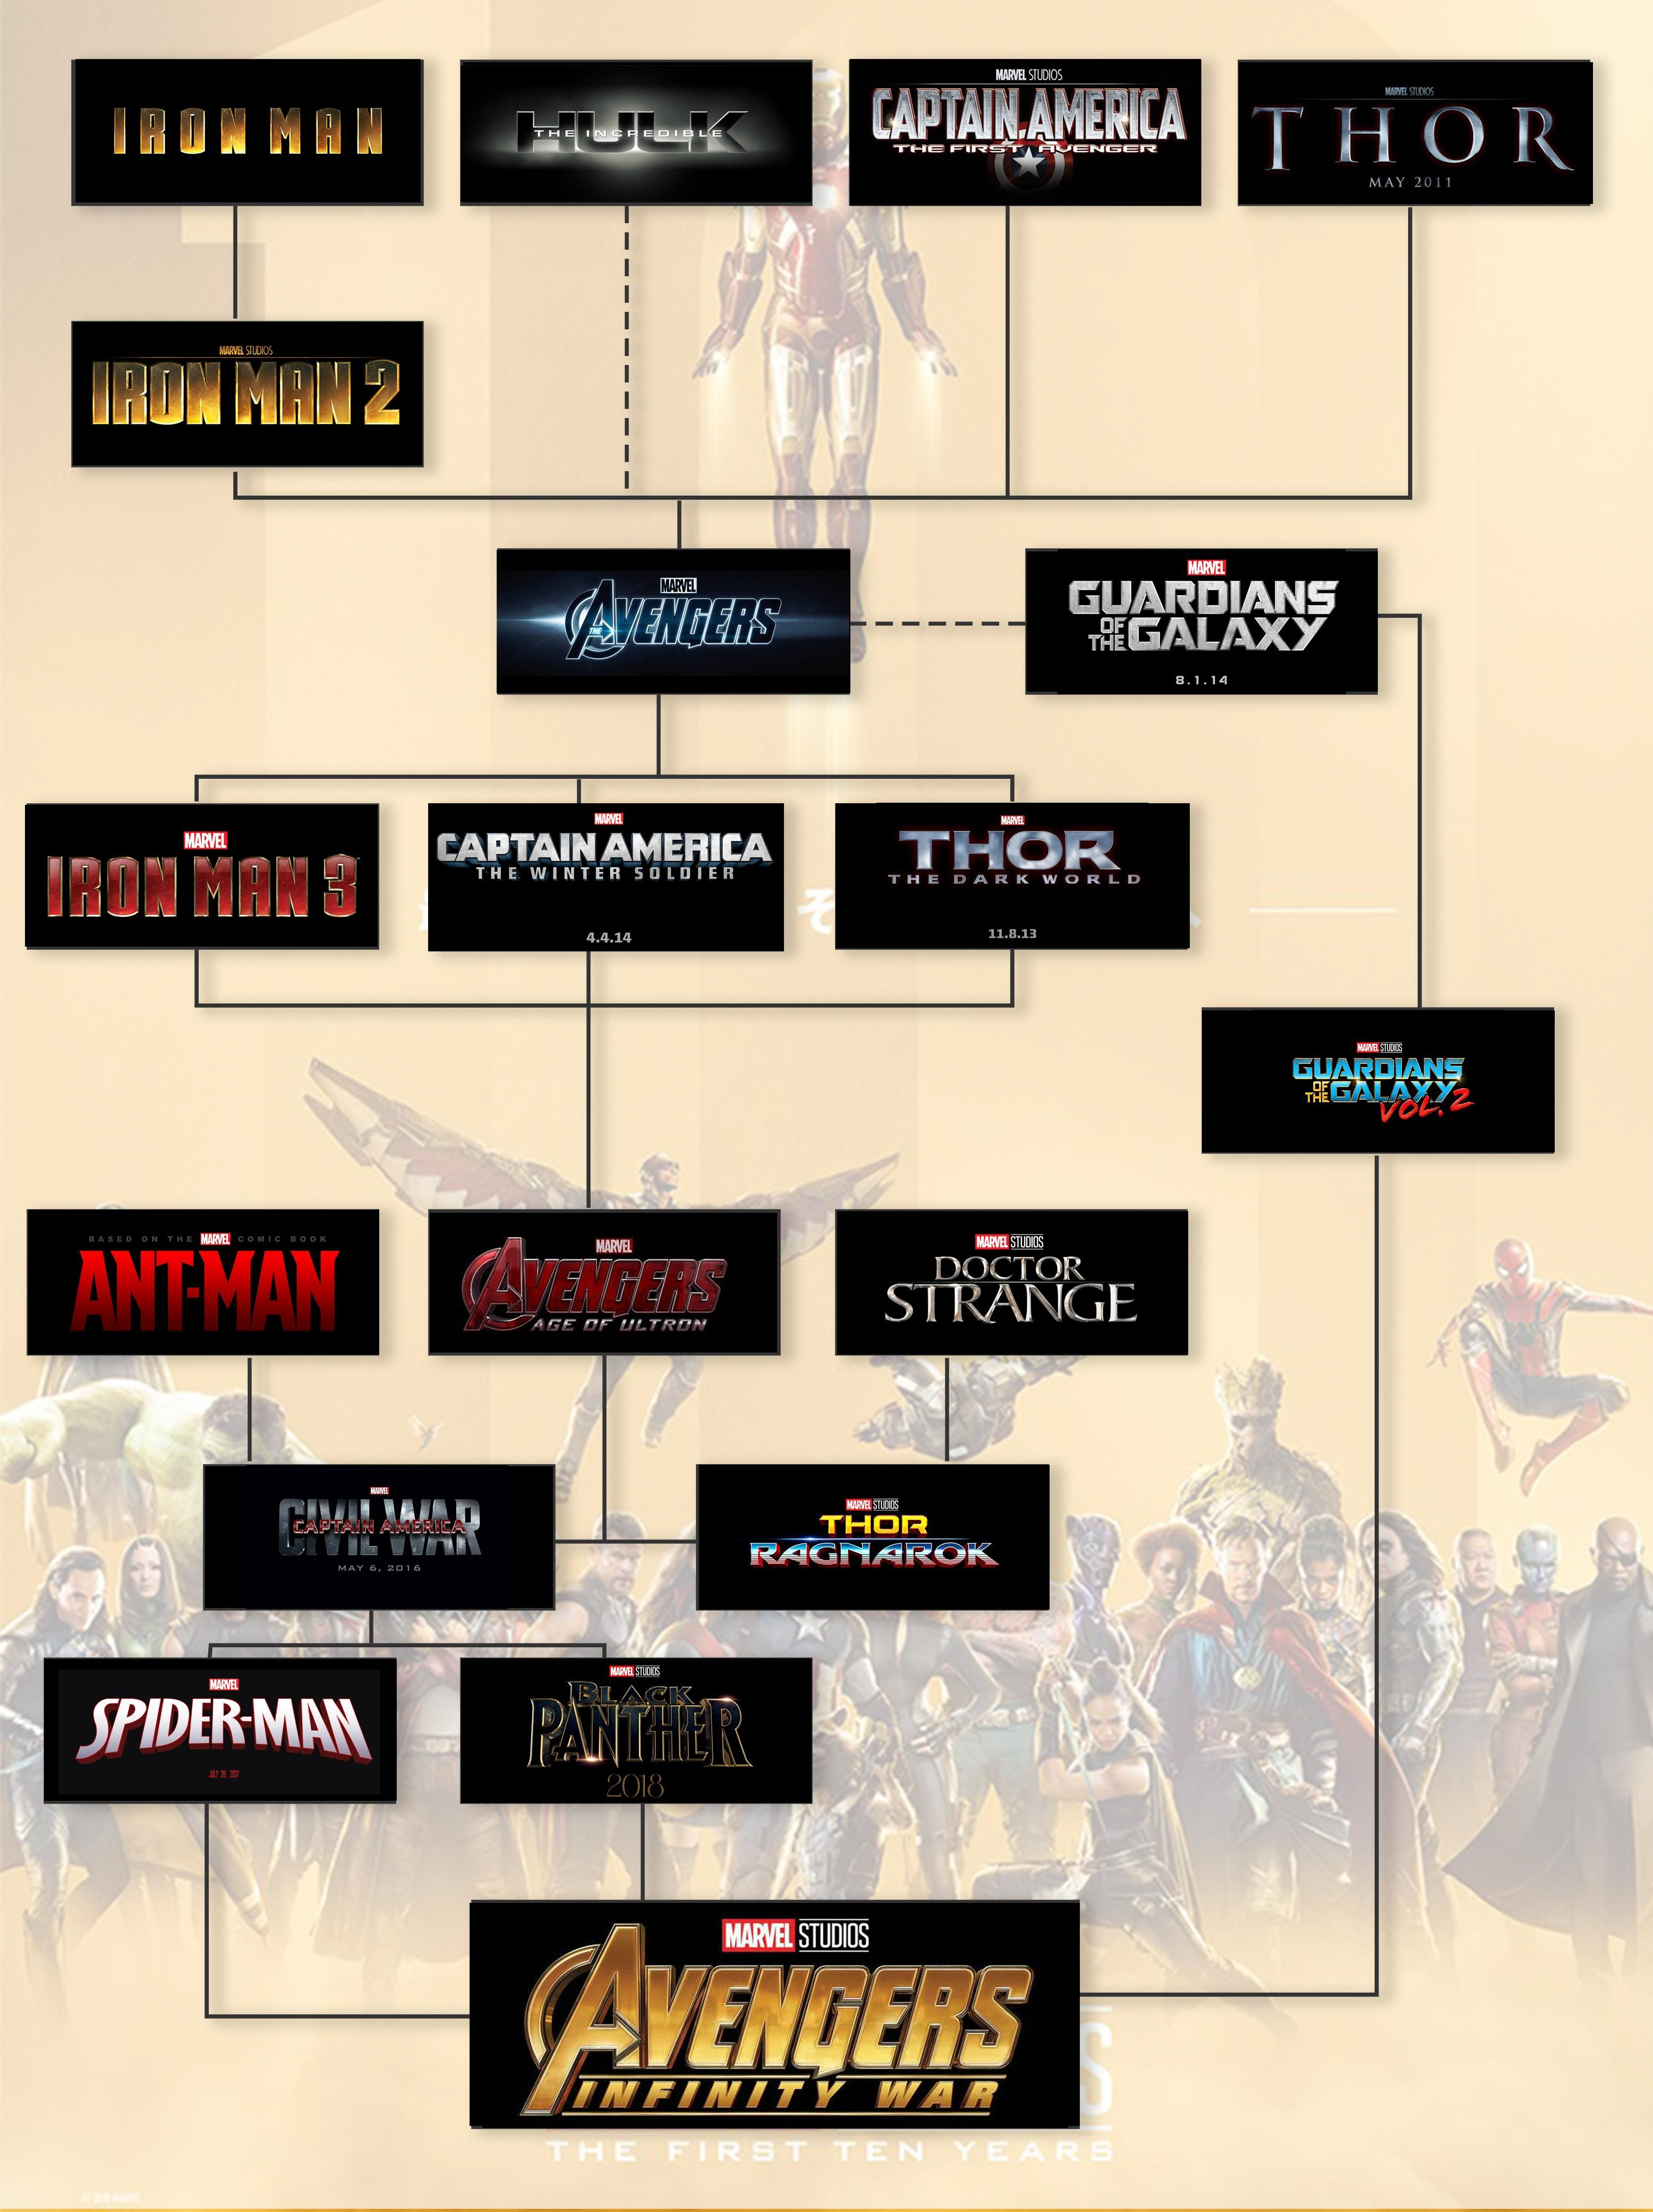 Marvel Studios And The Marvel Cinematic Universe Marvel Movies In Order Marvel Avengers Movies Marvel Timeline